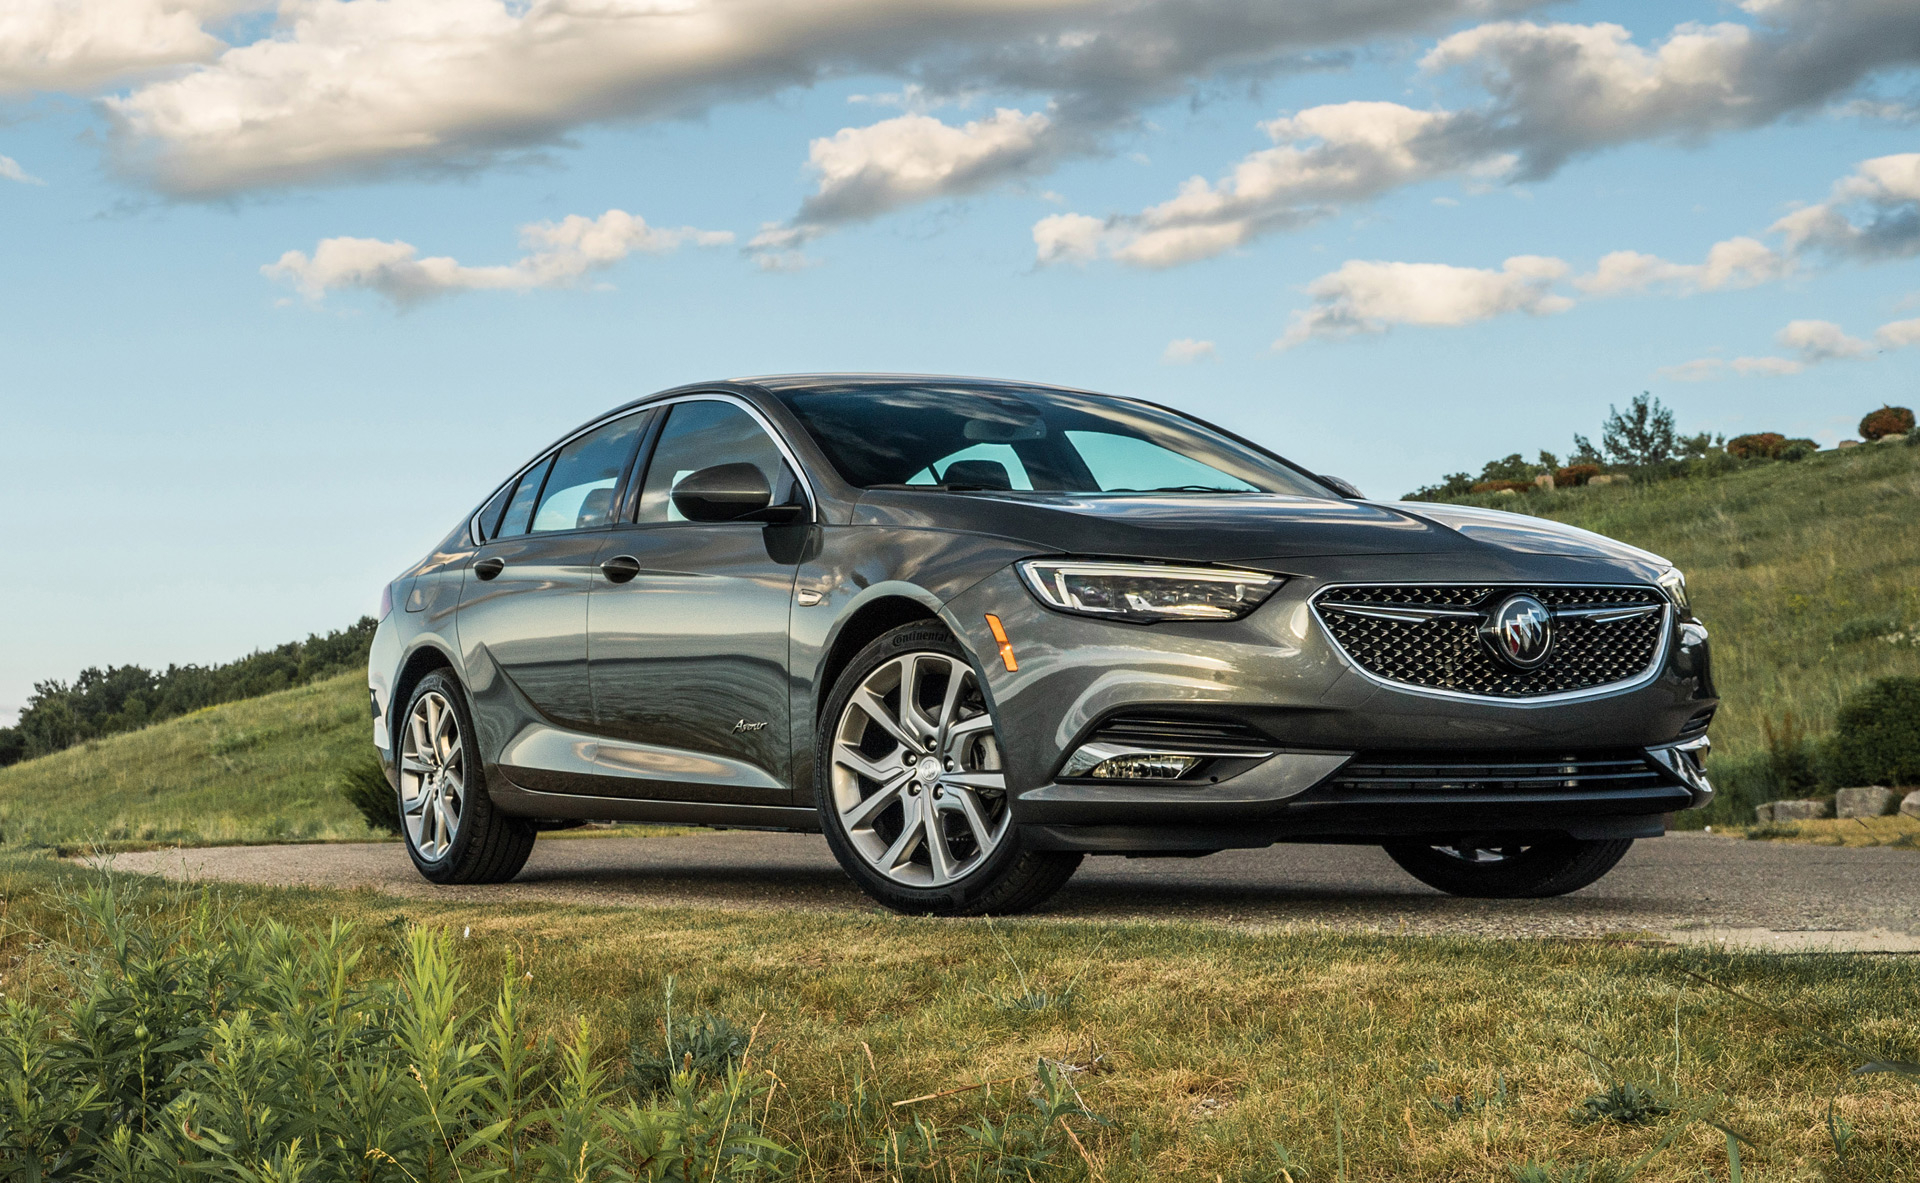 2019 Buick Regal Offered With Upmarket Avenir Trim 2022 Buick Regal Production, Pictures, Price